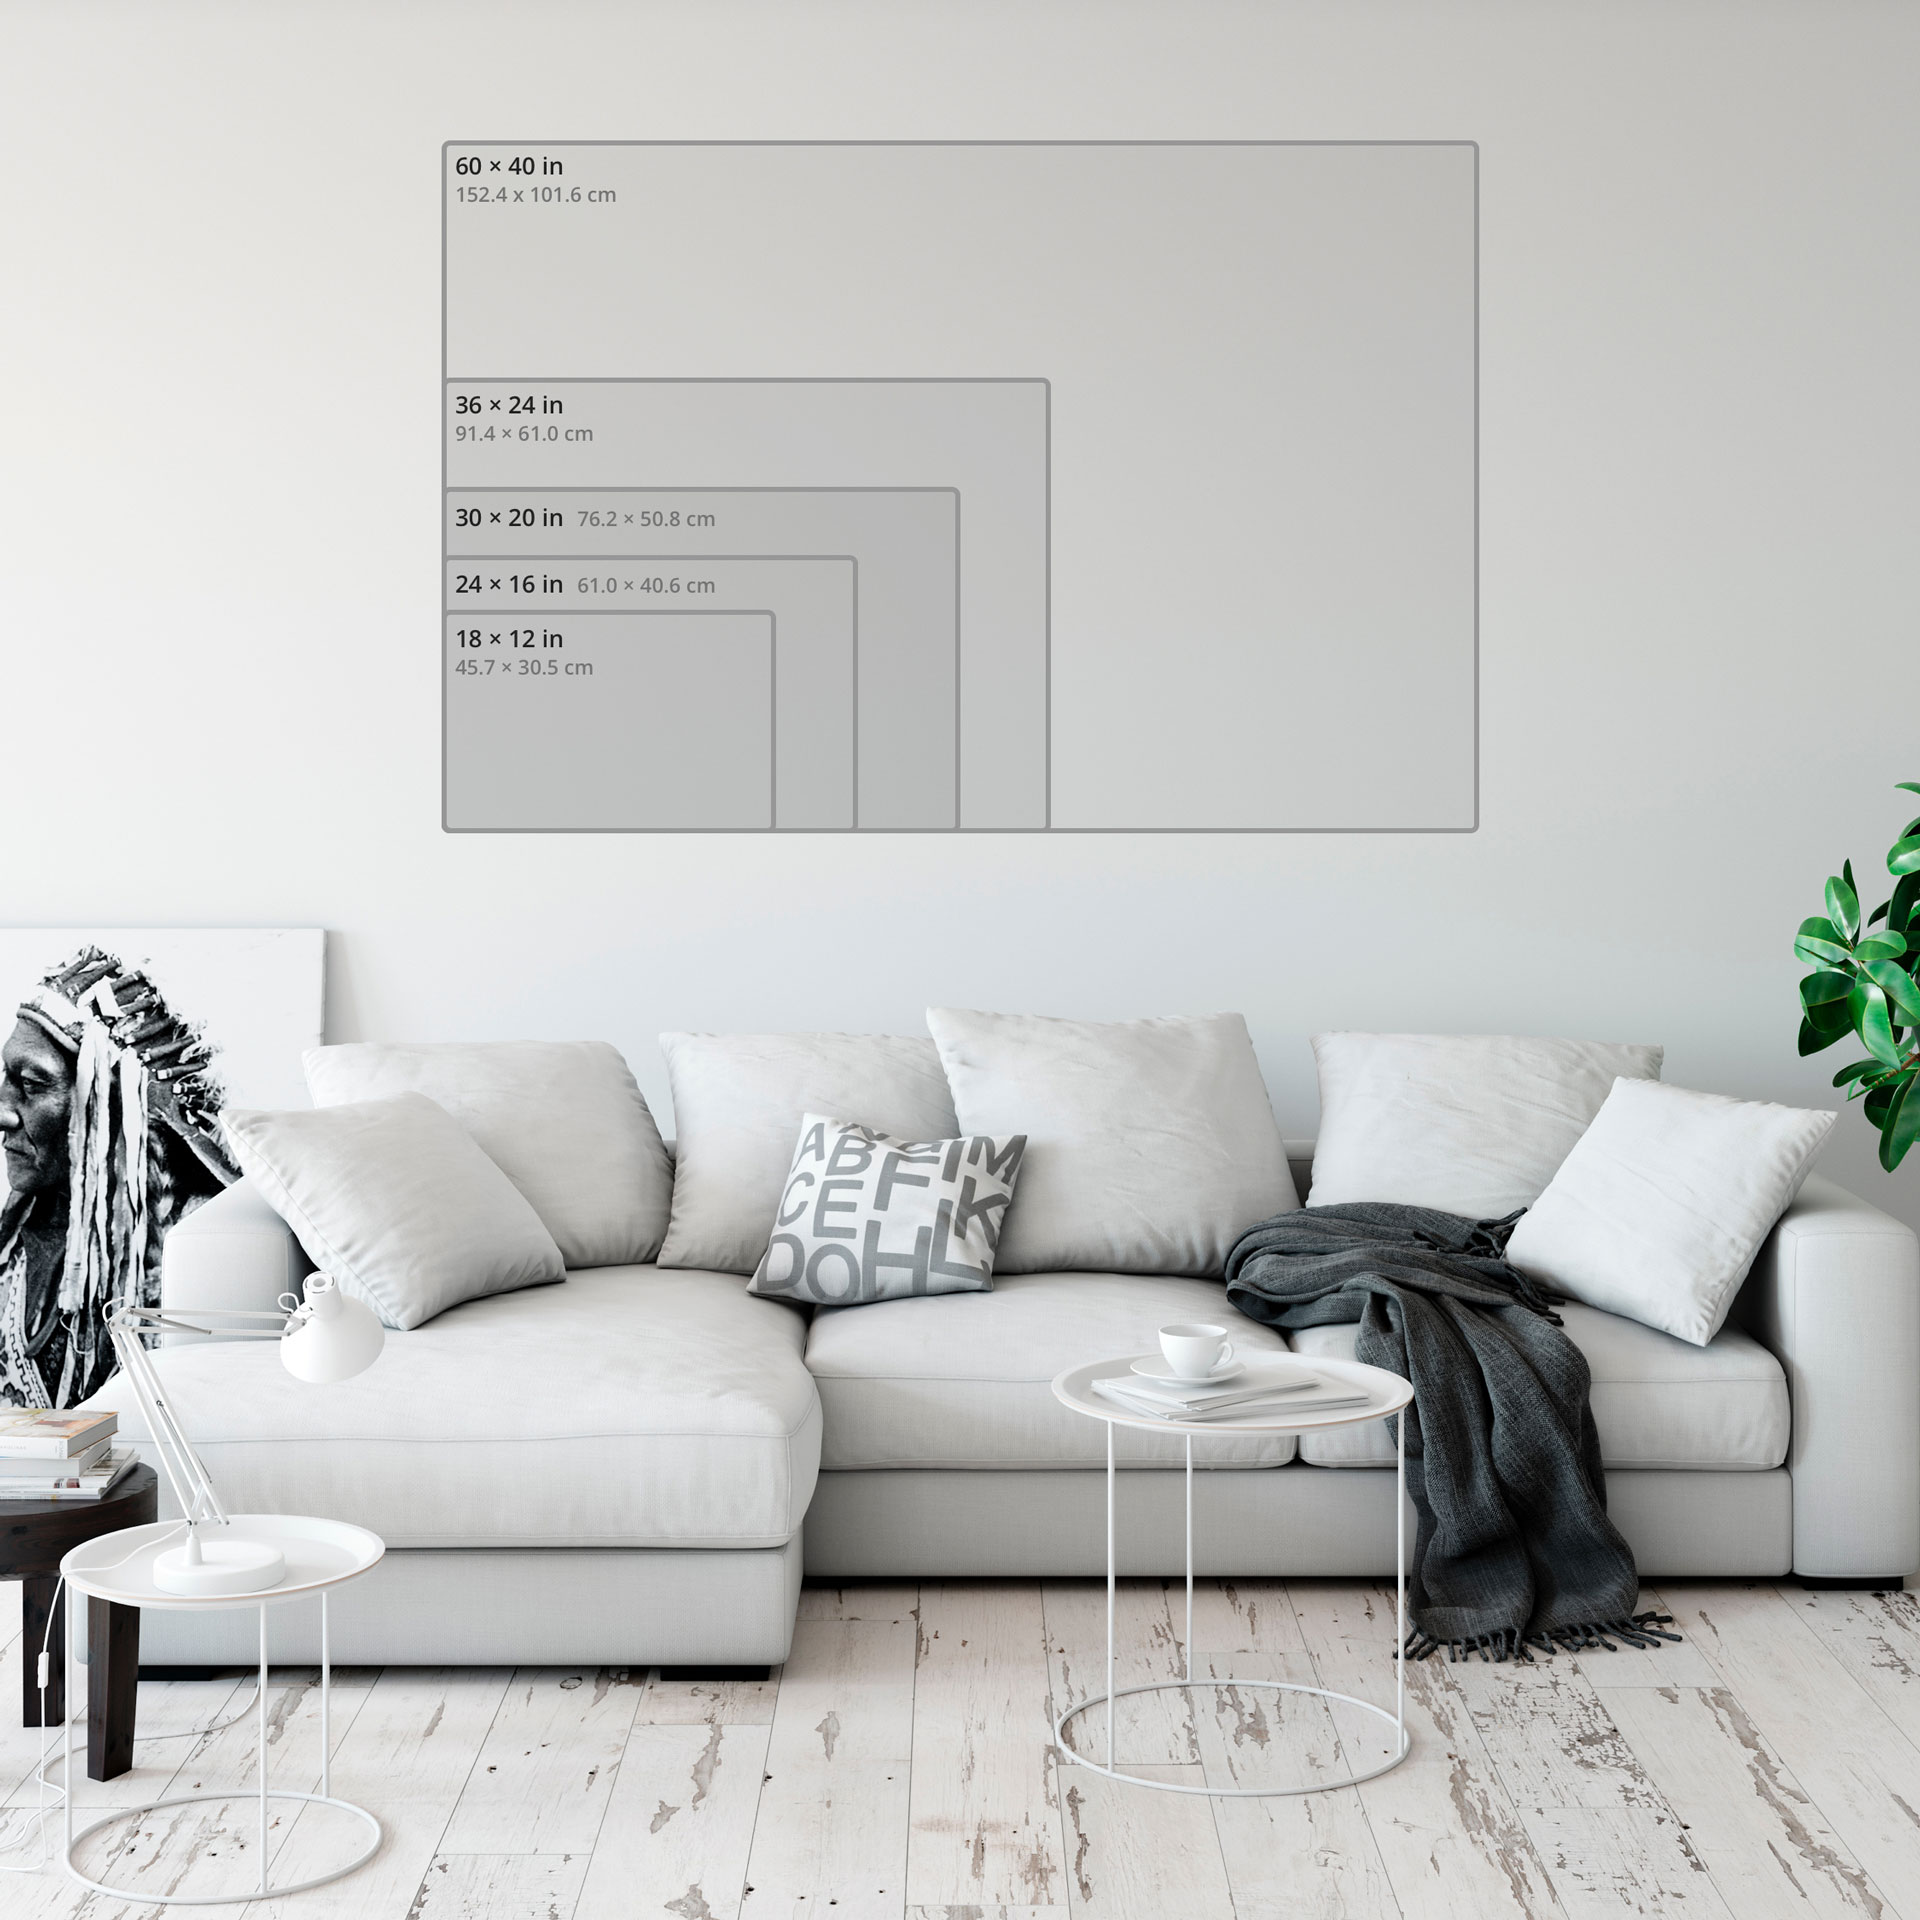 Hd metal print aspect ratio 1.33